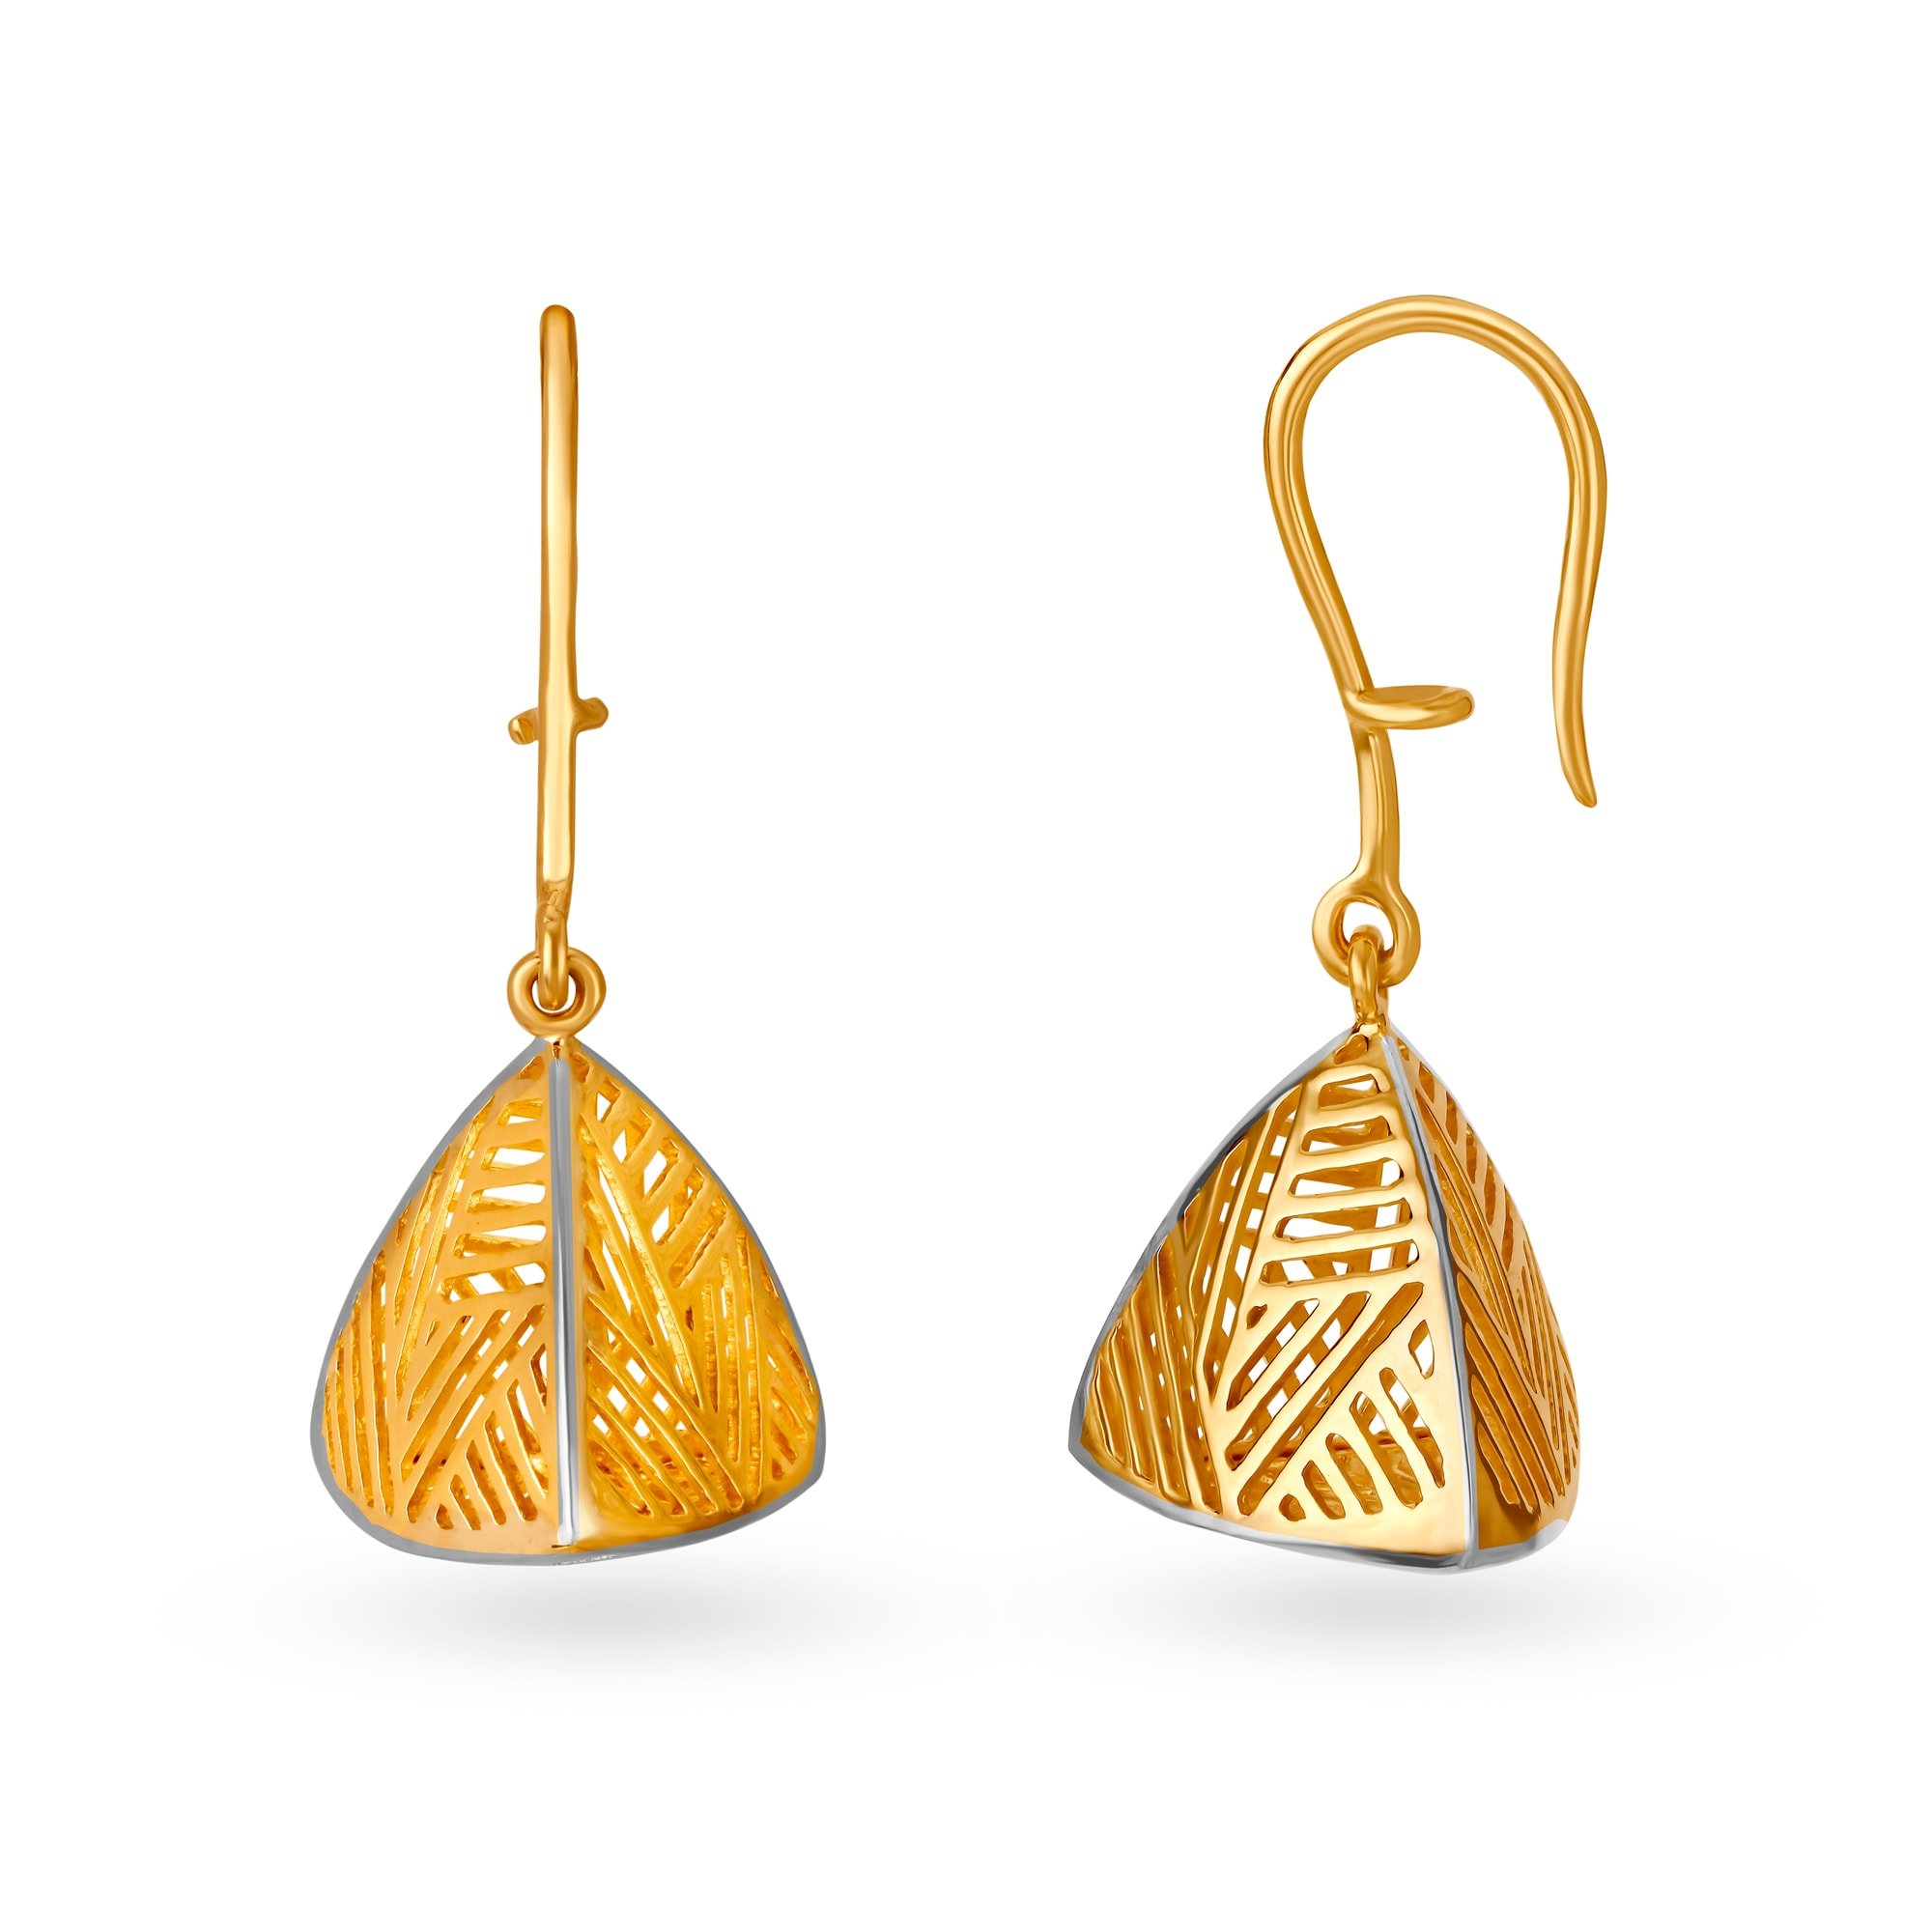 Mia By Tanishq 14kt Yellow And White Gold Hoop Earrings With Triangular Design Tanishq